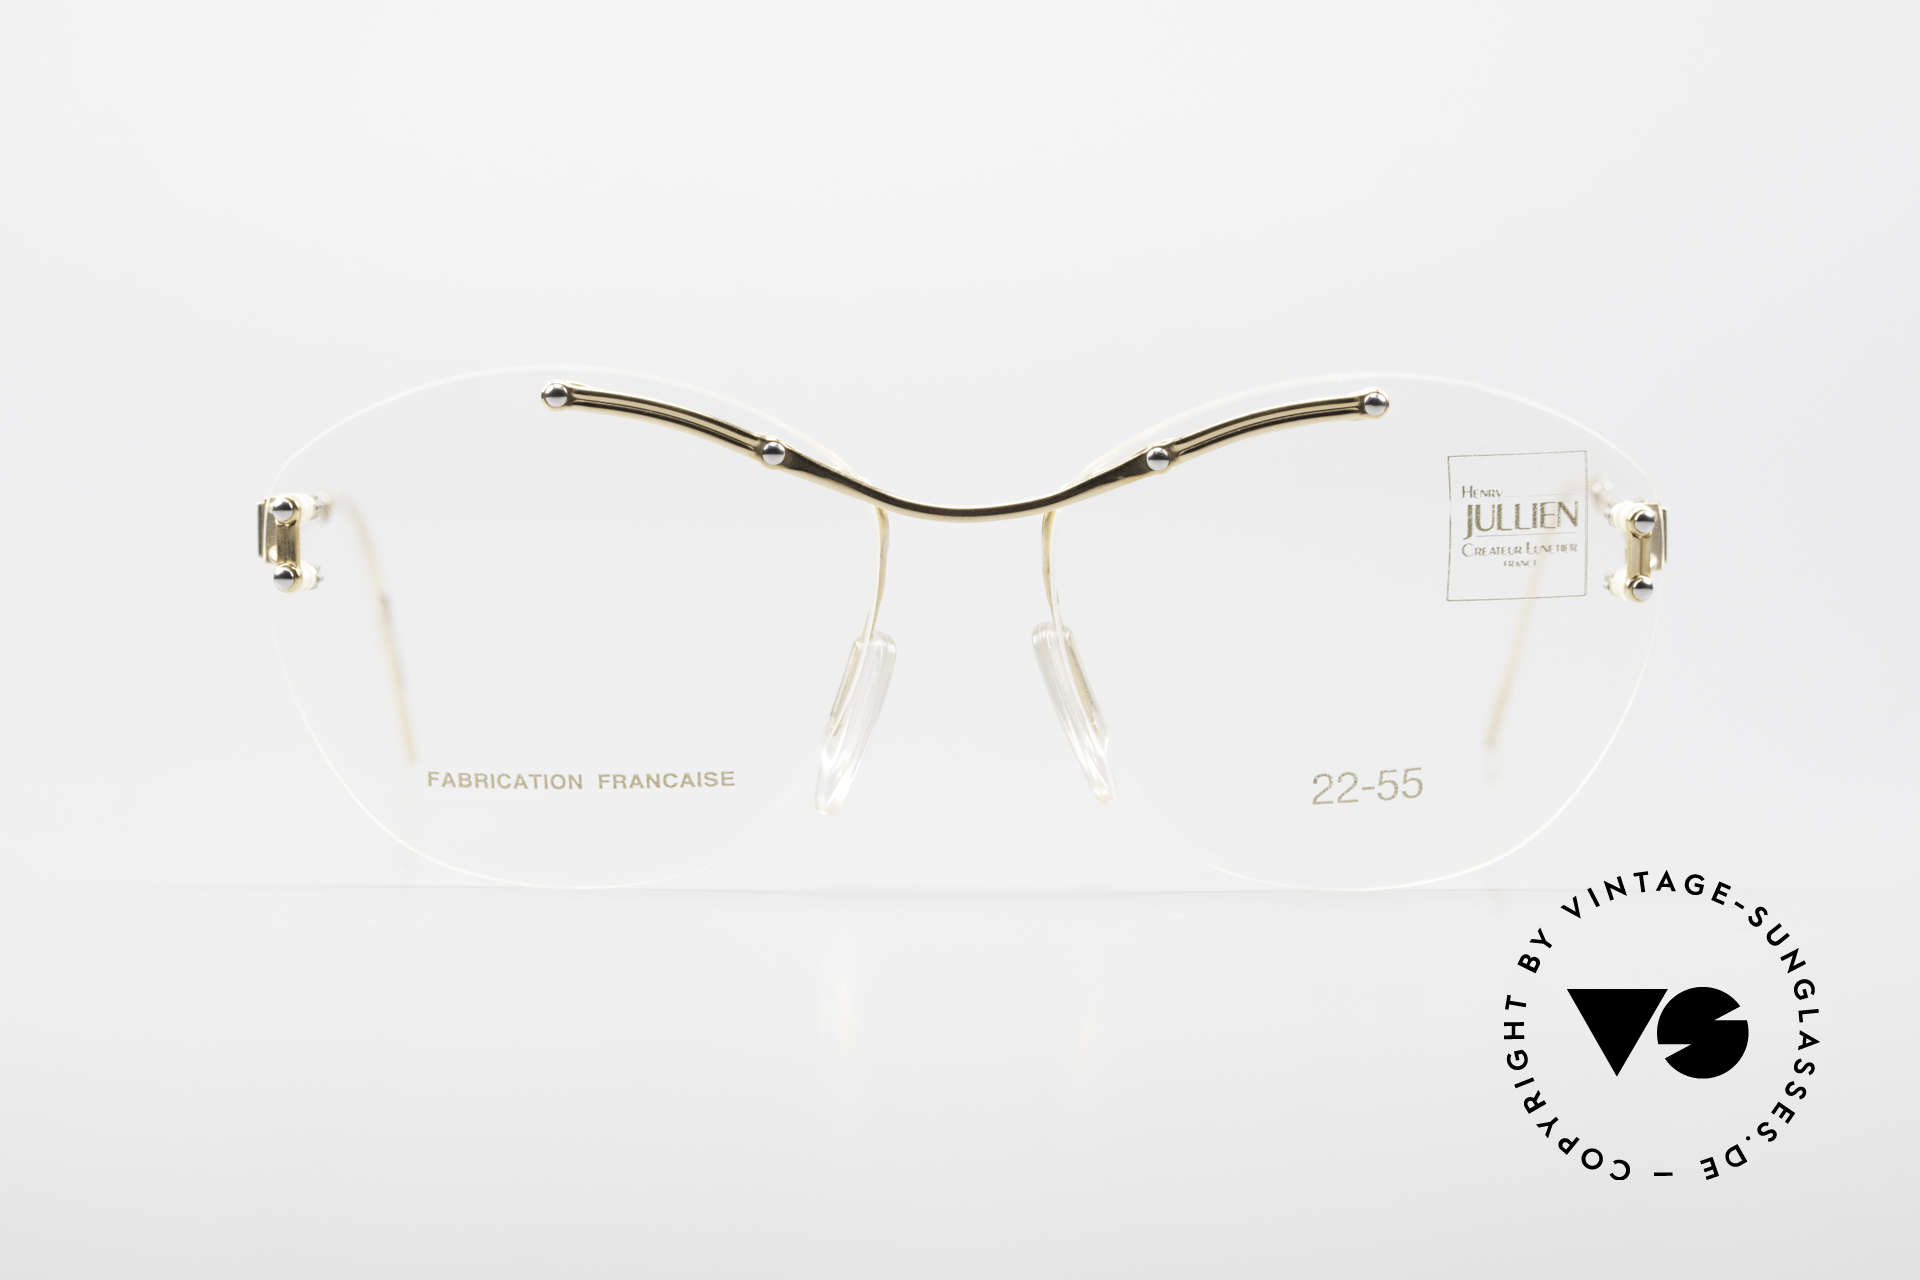 Henry Jullien Melrose 2255 Rimless Vintage Ladies Frame, Jullien is well-known for high-end gold processing, Made for Women